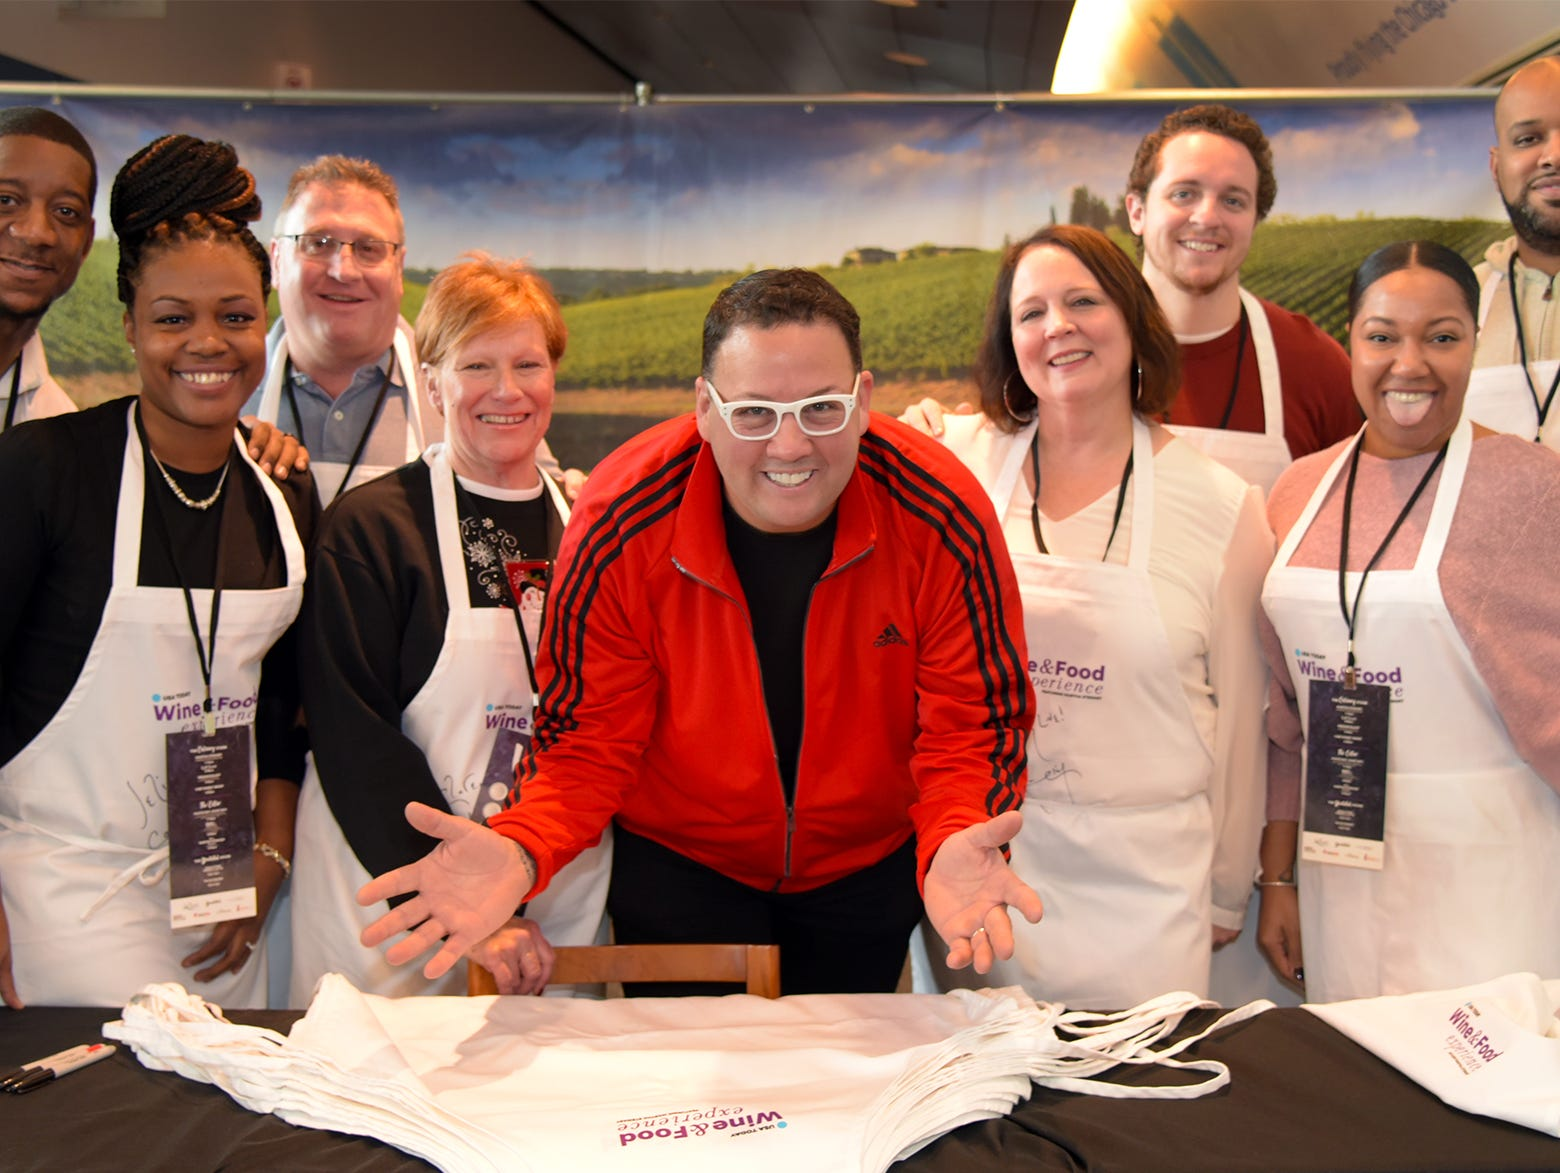 Graham Elliot, TV personality and chef, in his hometown city.